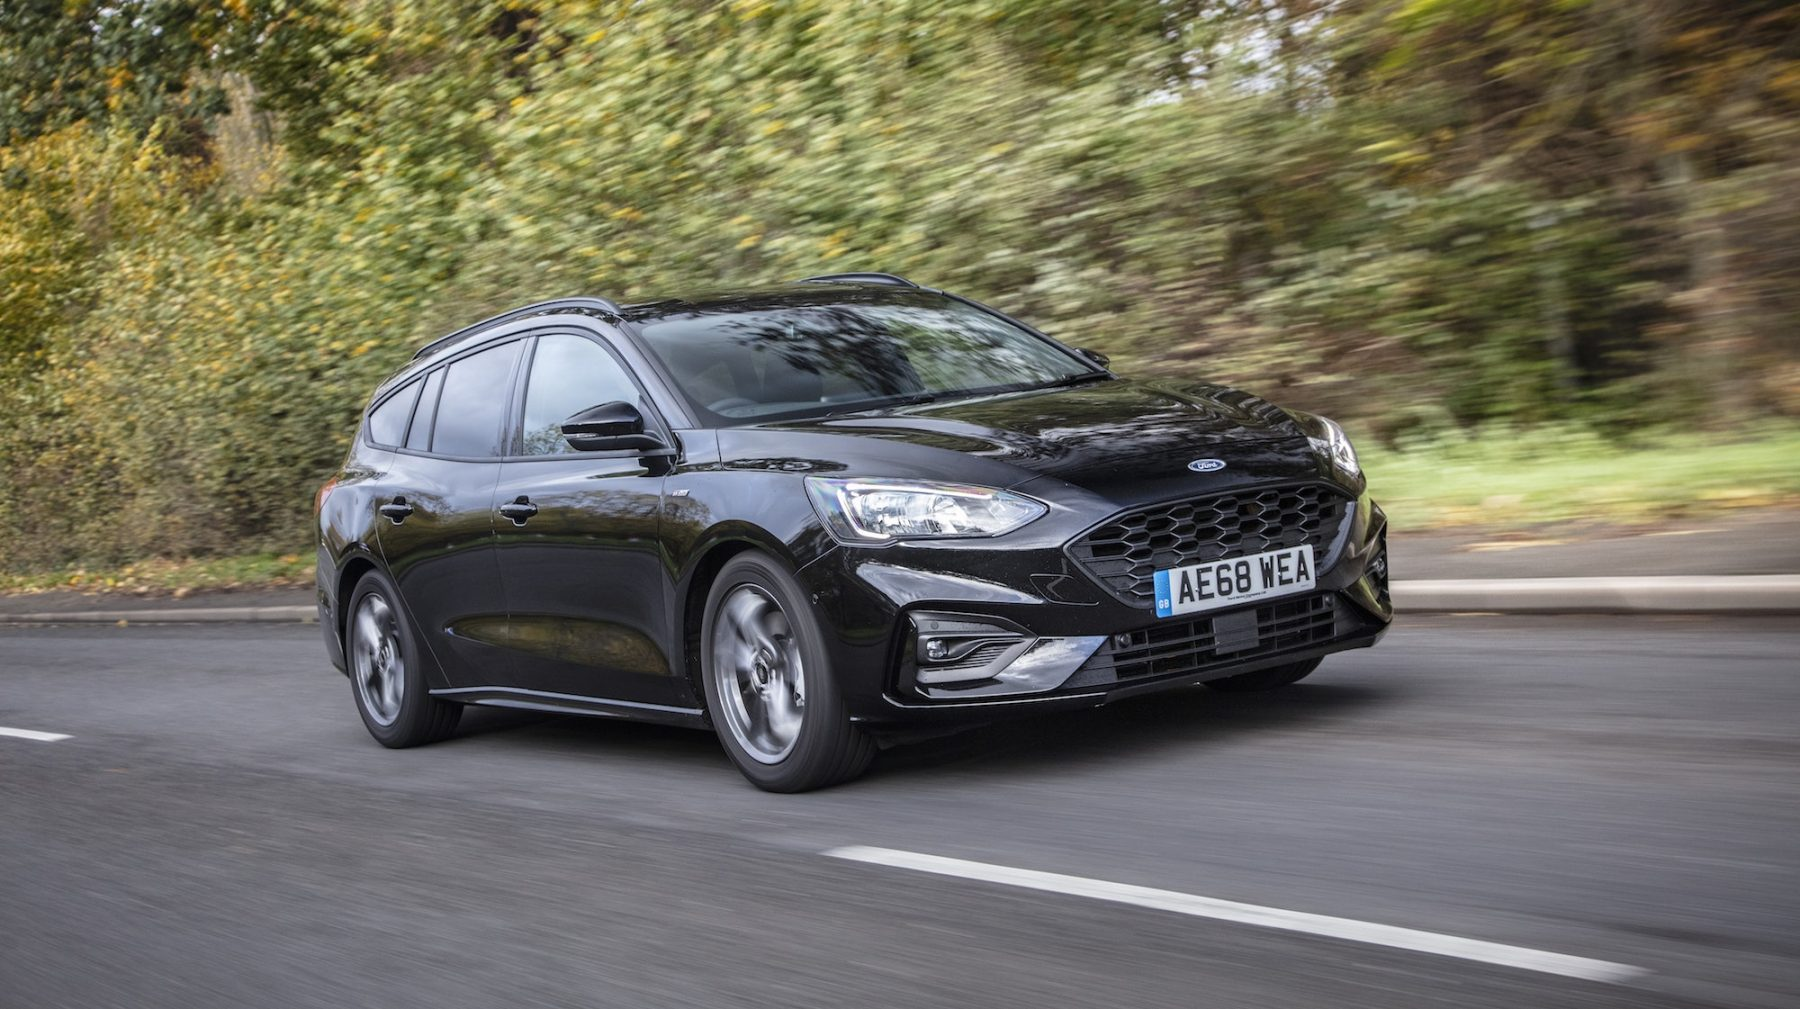 The Focus Estate is one of the better-handling small estate cars on the market